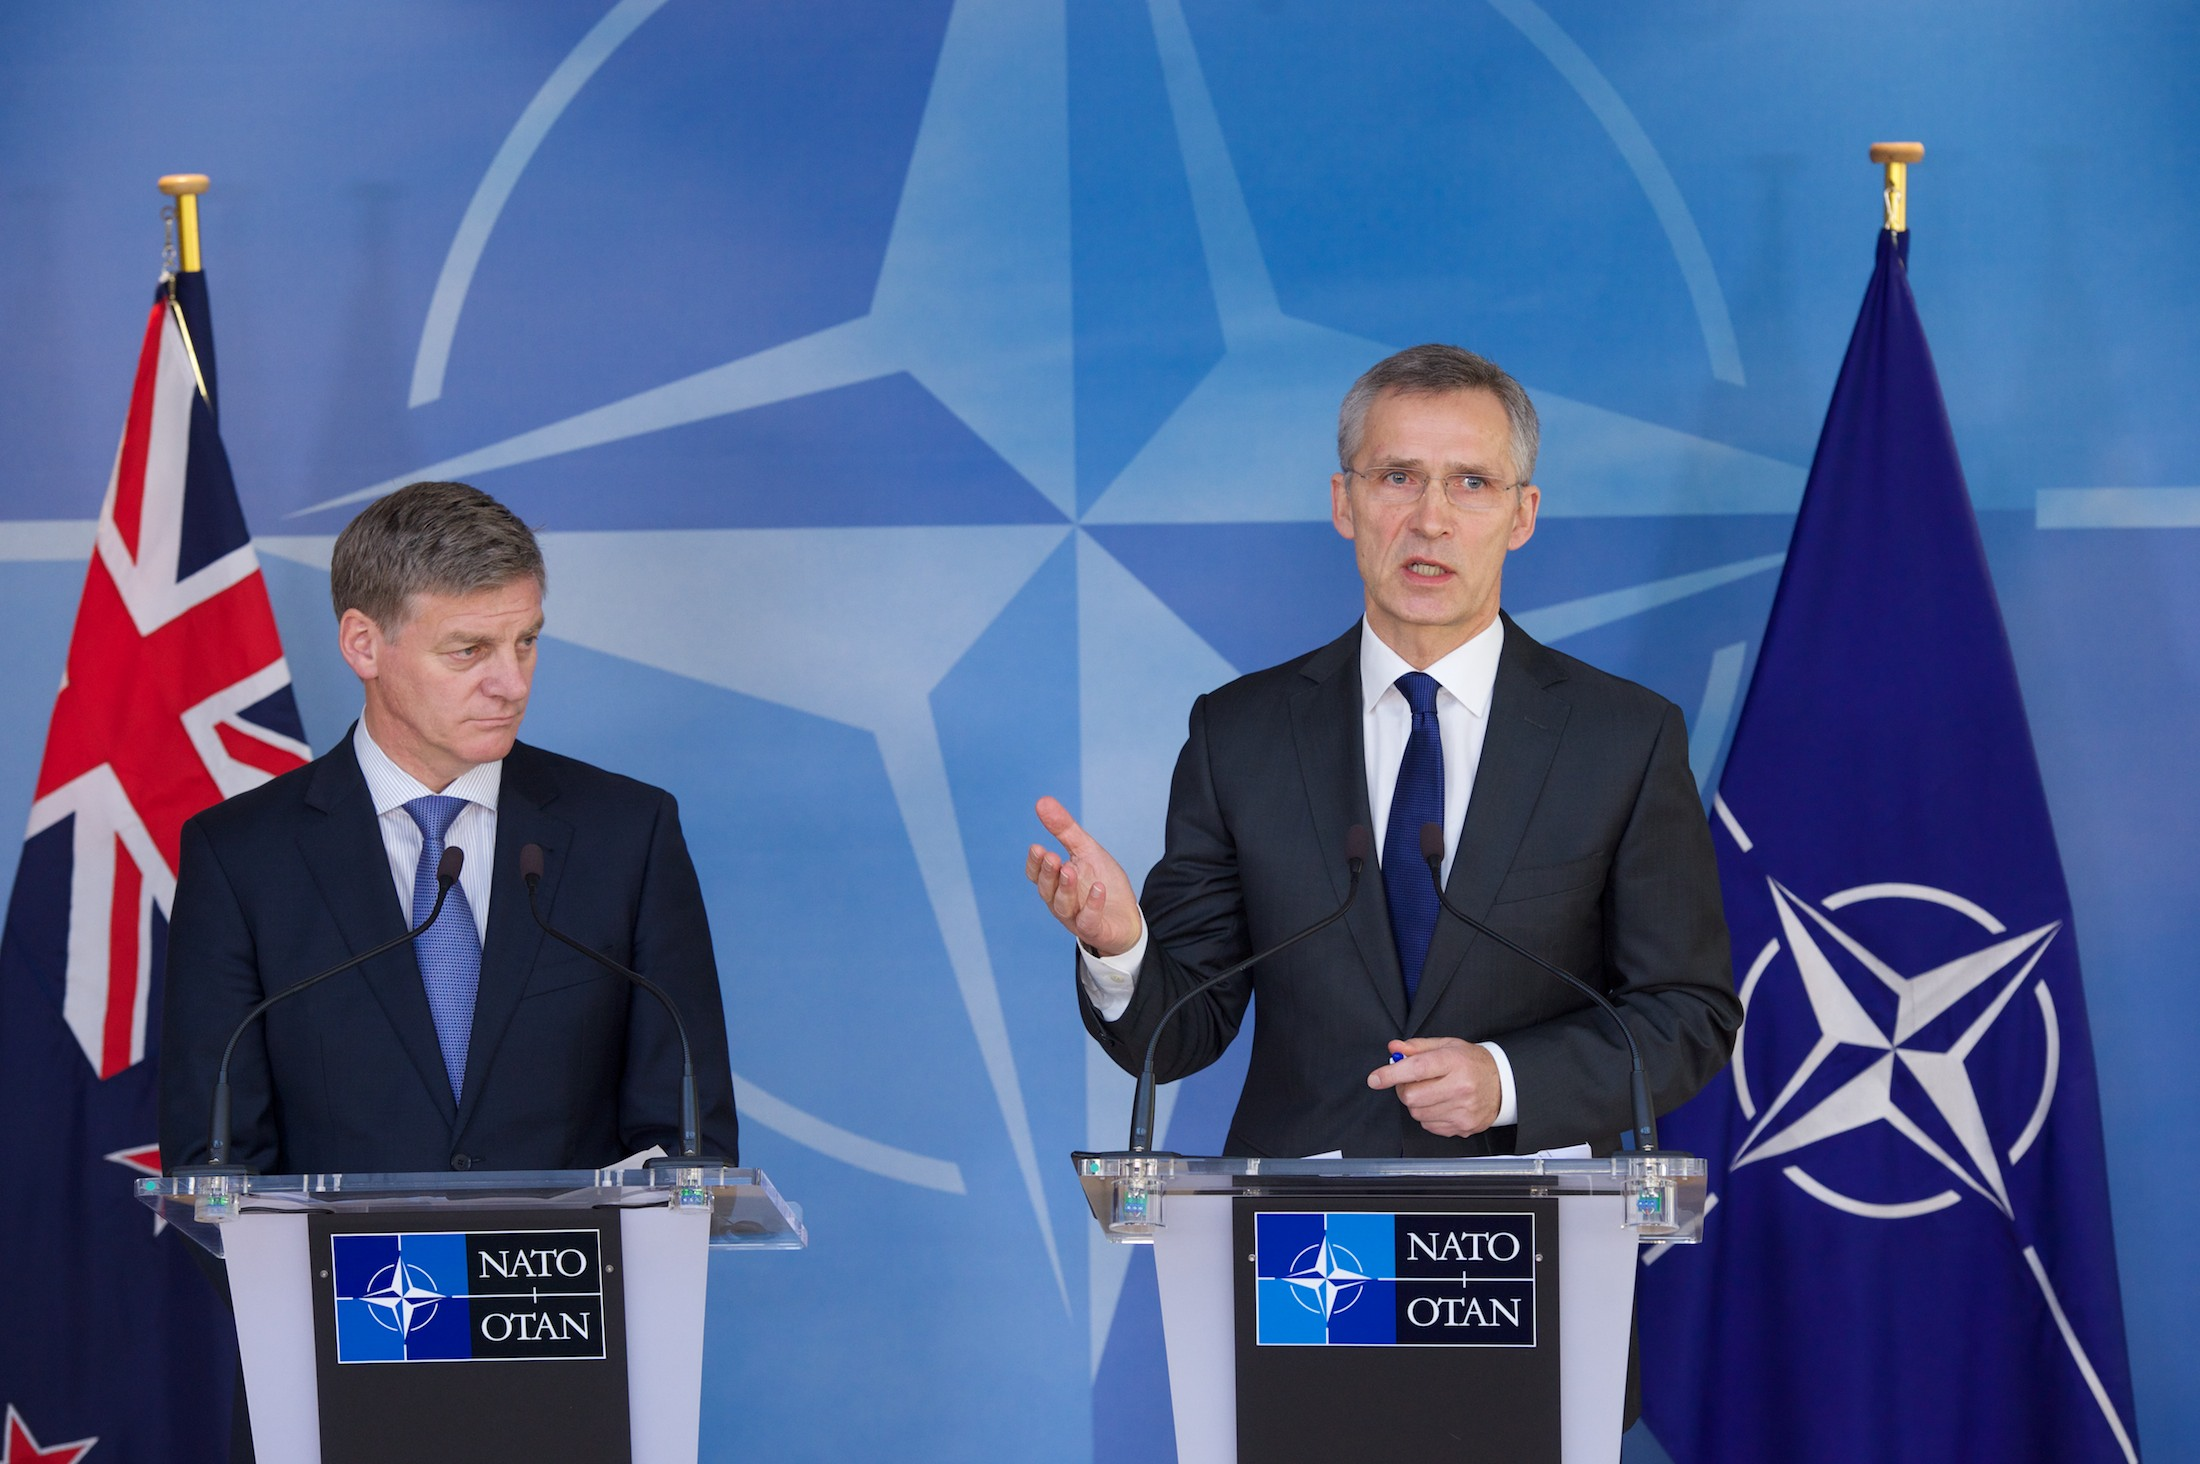 Joint press point with NATO Secretary General Jens Stoltenberg and the Prime Minister of New Zealand, Bill English. (Photo: NATO)